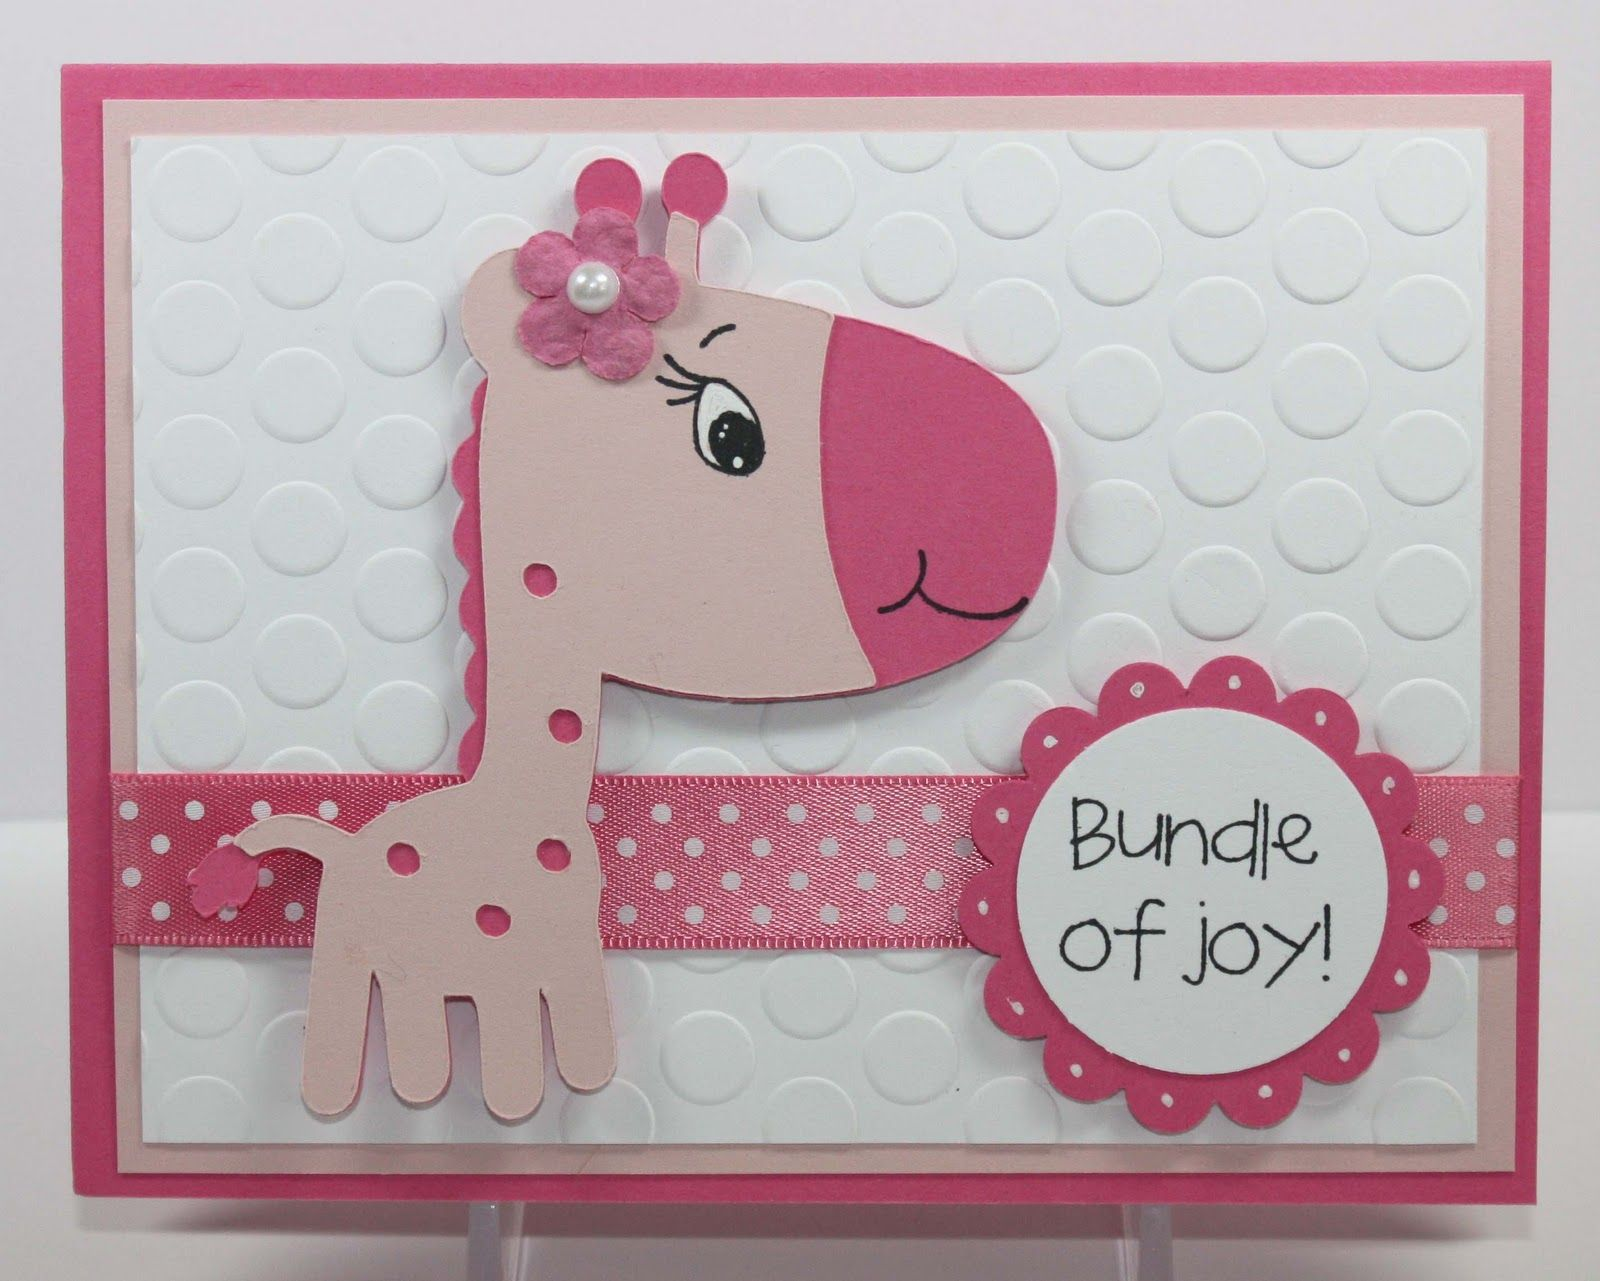 Cricut Card Making Ideas Part - 21: Cricut Baby Cards | Simply Pam: Episode 39: Baby Giraffe Card